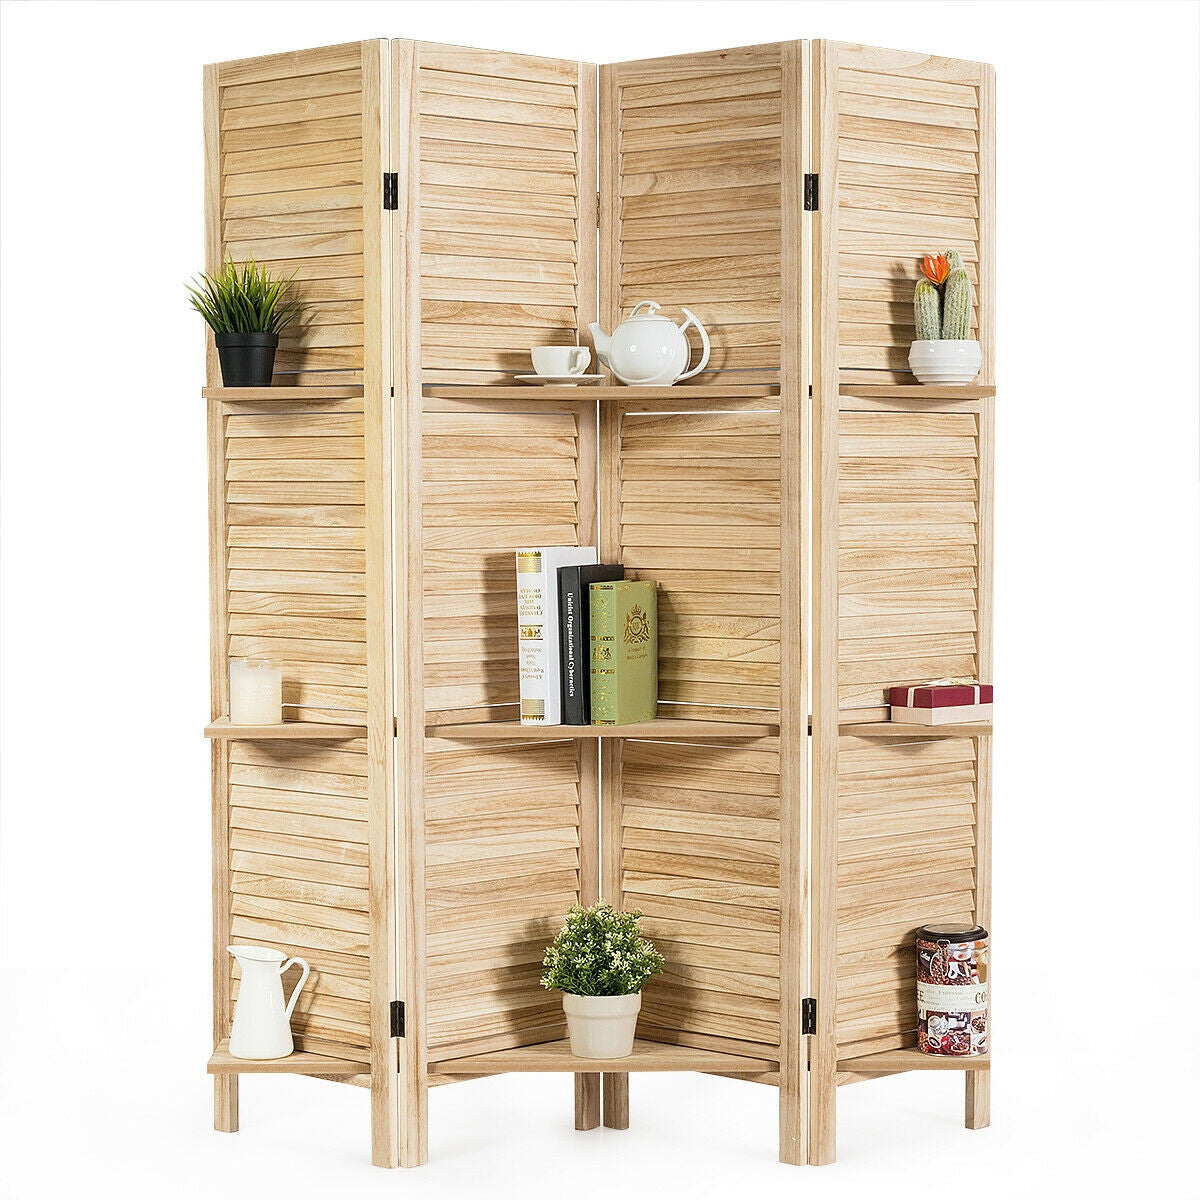 Dividz™ Room Divider 4 Panel Freestanding Folding Hinged Partition Privacy Screen with Shelves